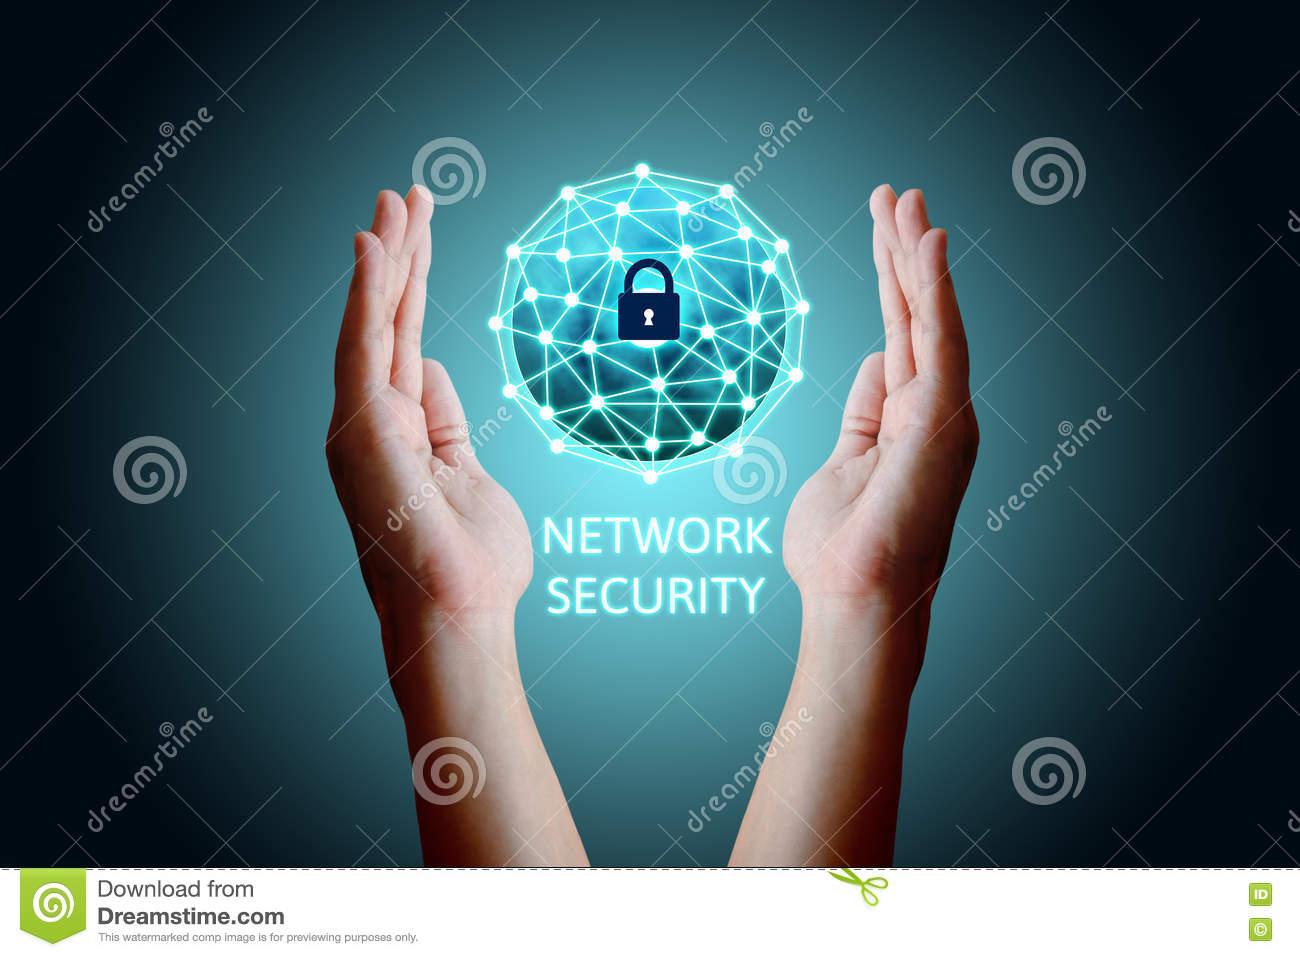 Free Internet Security >> Cyber Security Network Concept, Young Asian Man Holding Global N Stock Photo - Image: 81671546